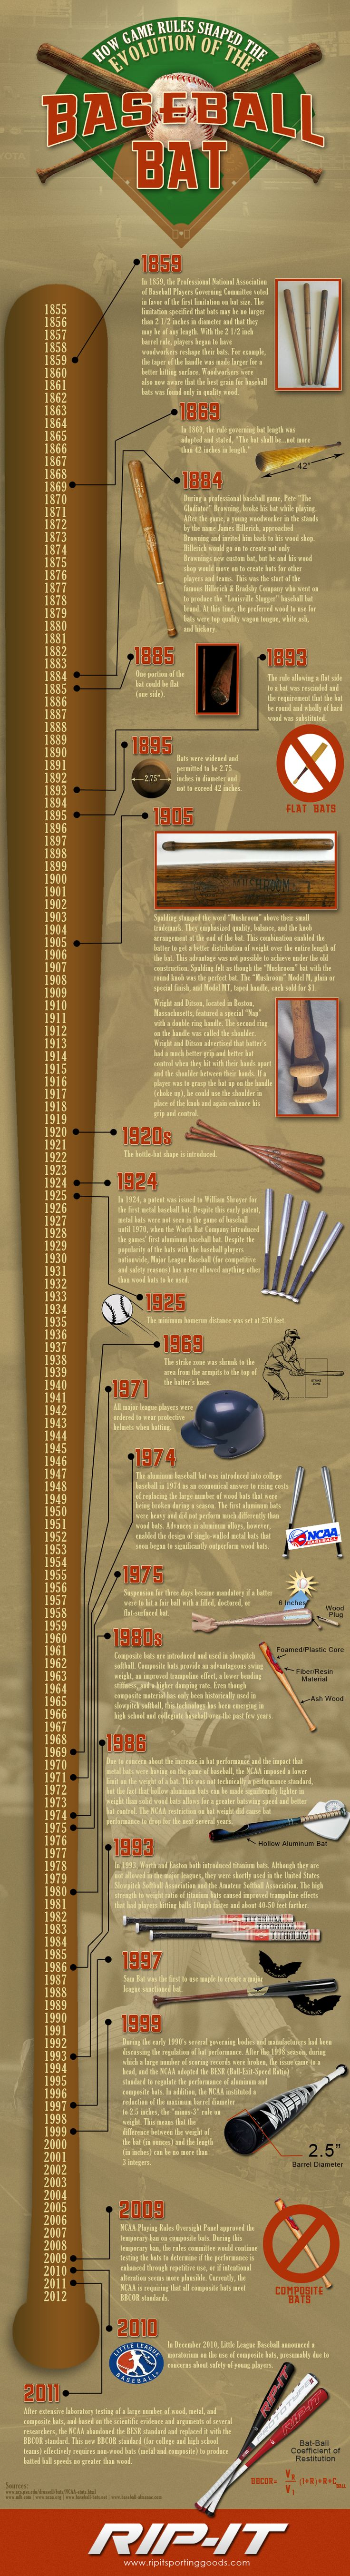 See how the history and technology of the baseball bat has changed over the years in this infographic by RIP-IT Sporting Goods.